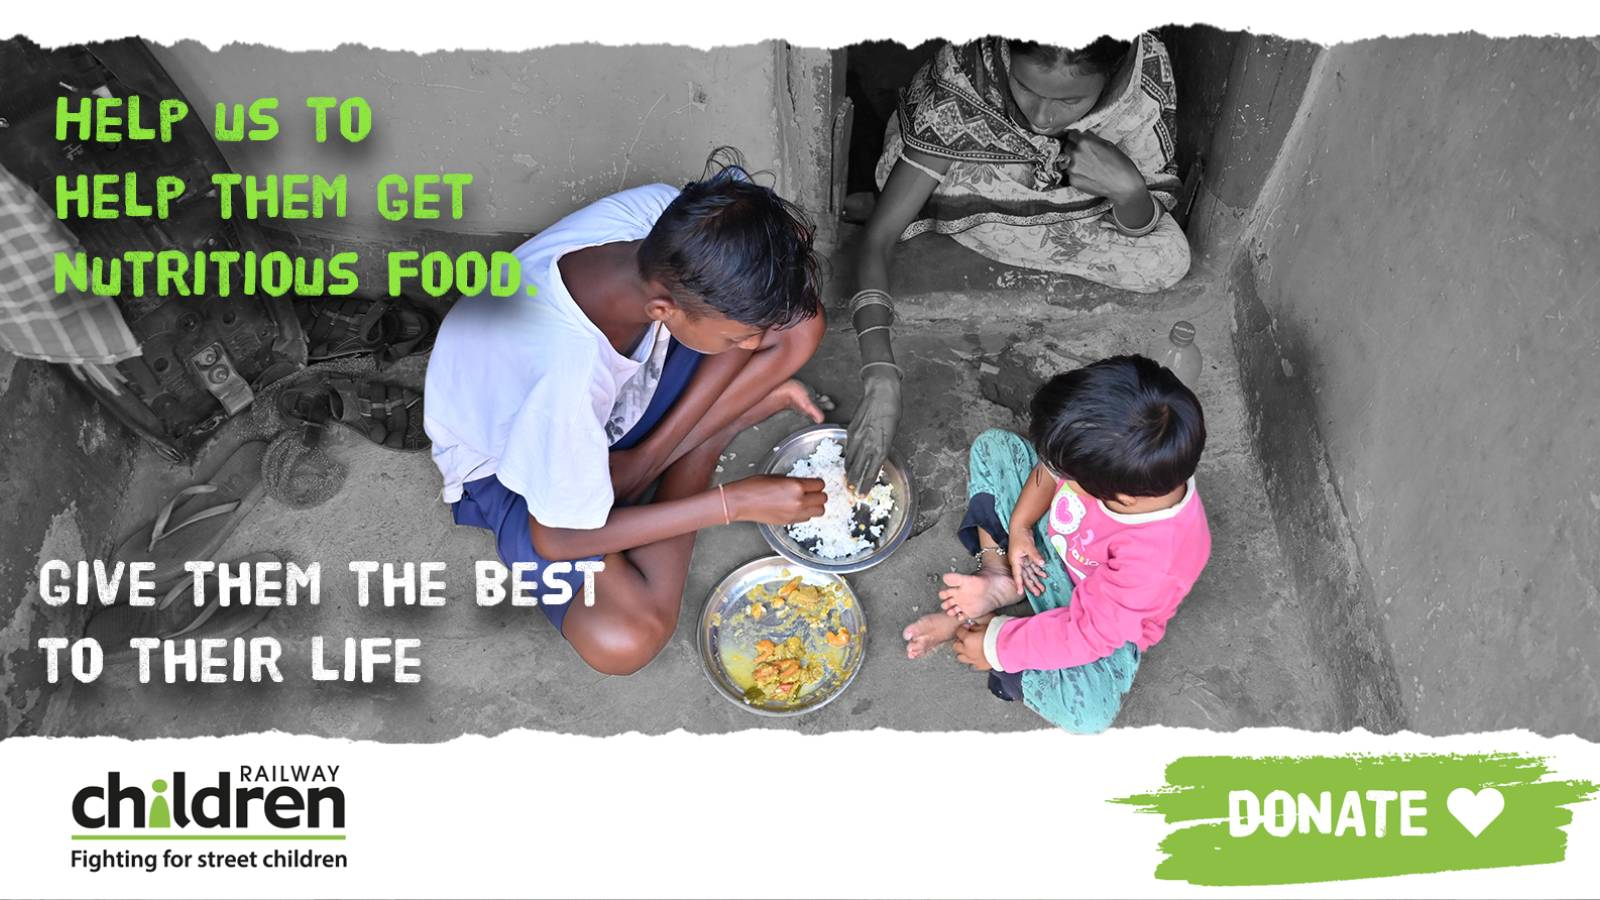 Help a mother feed her child with nutritious food in this pandemic.